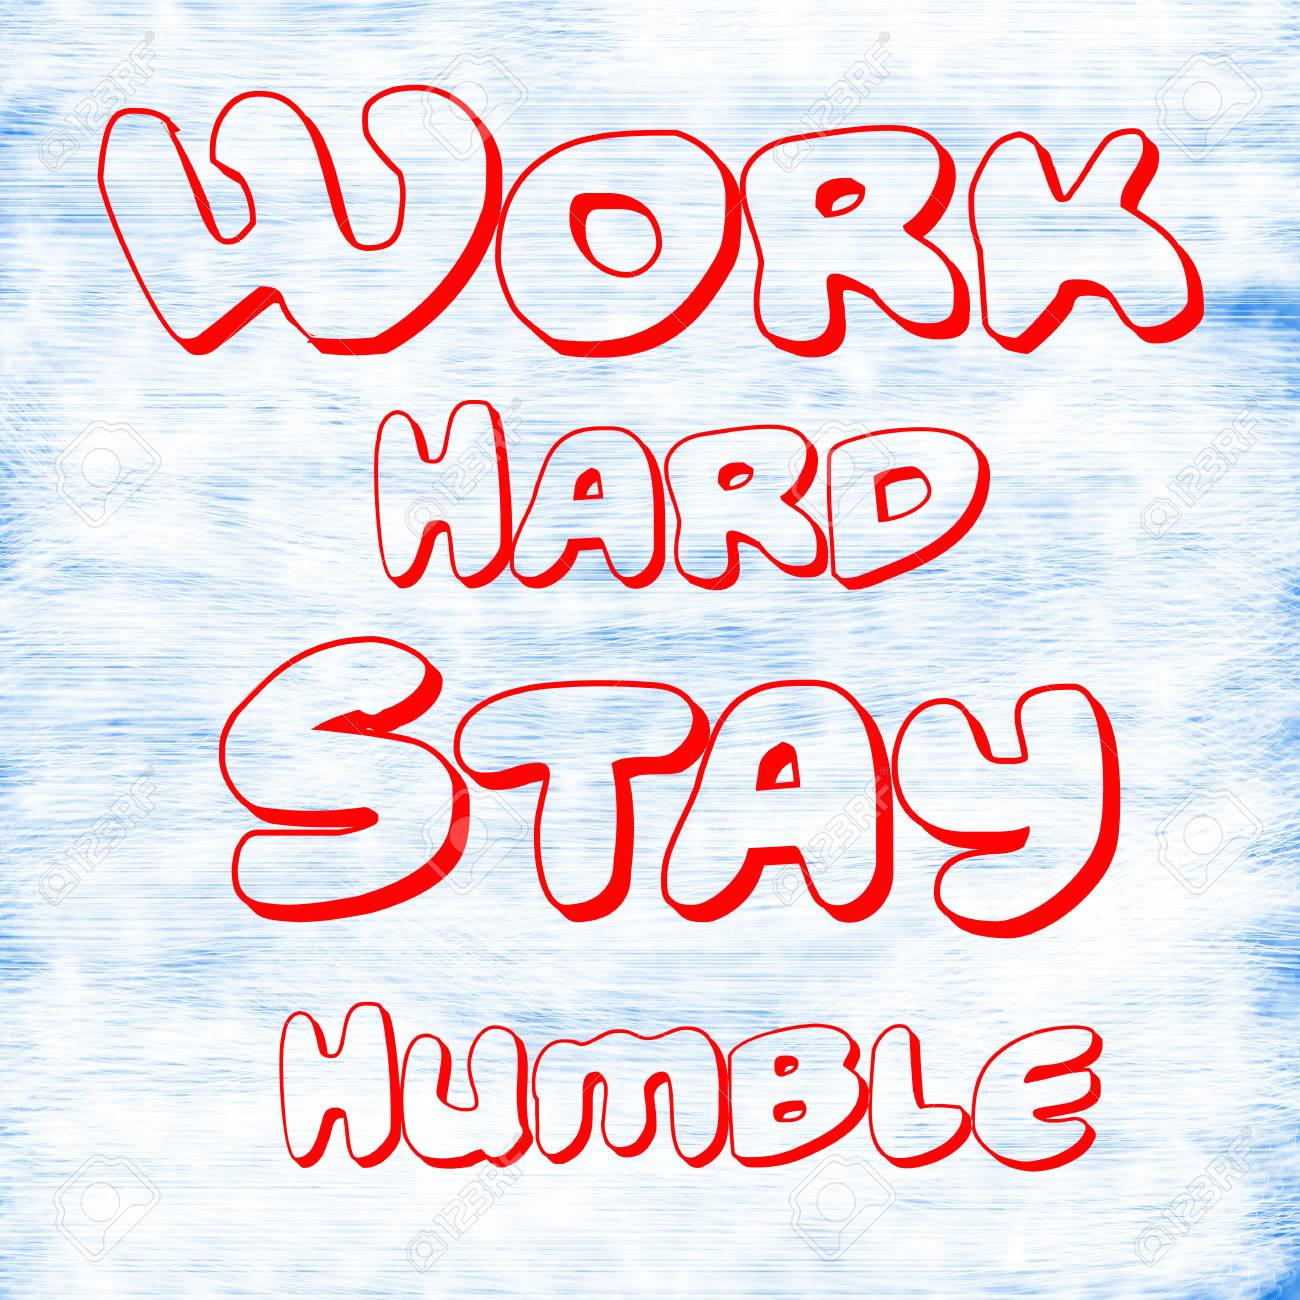 Work Hard Stay Humblecreative Inspiring Motivation Quote Concept